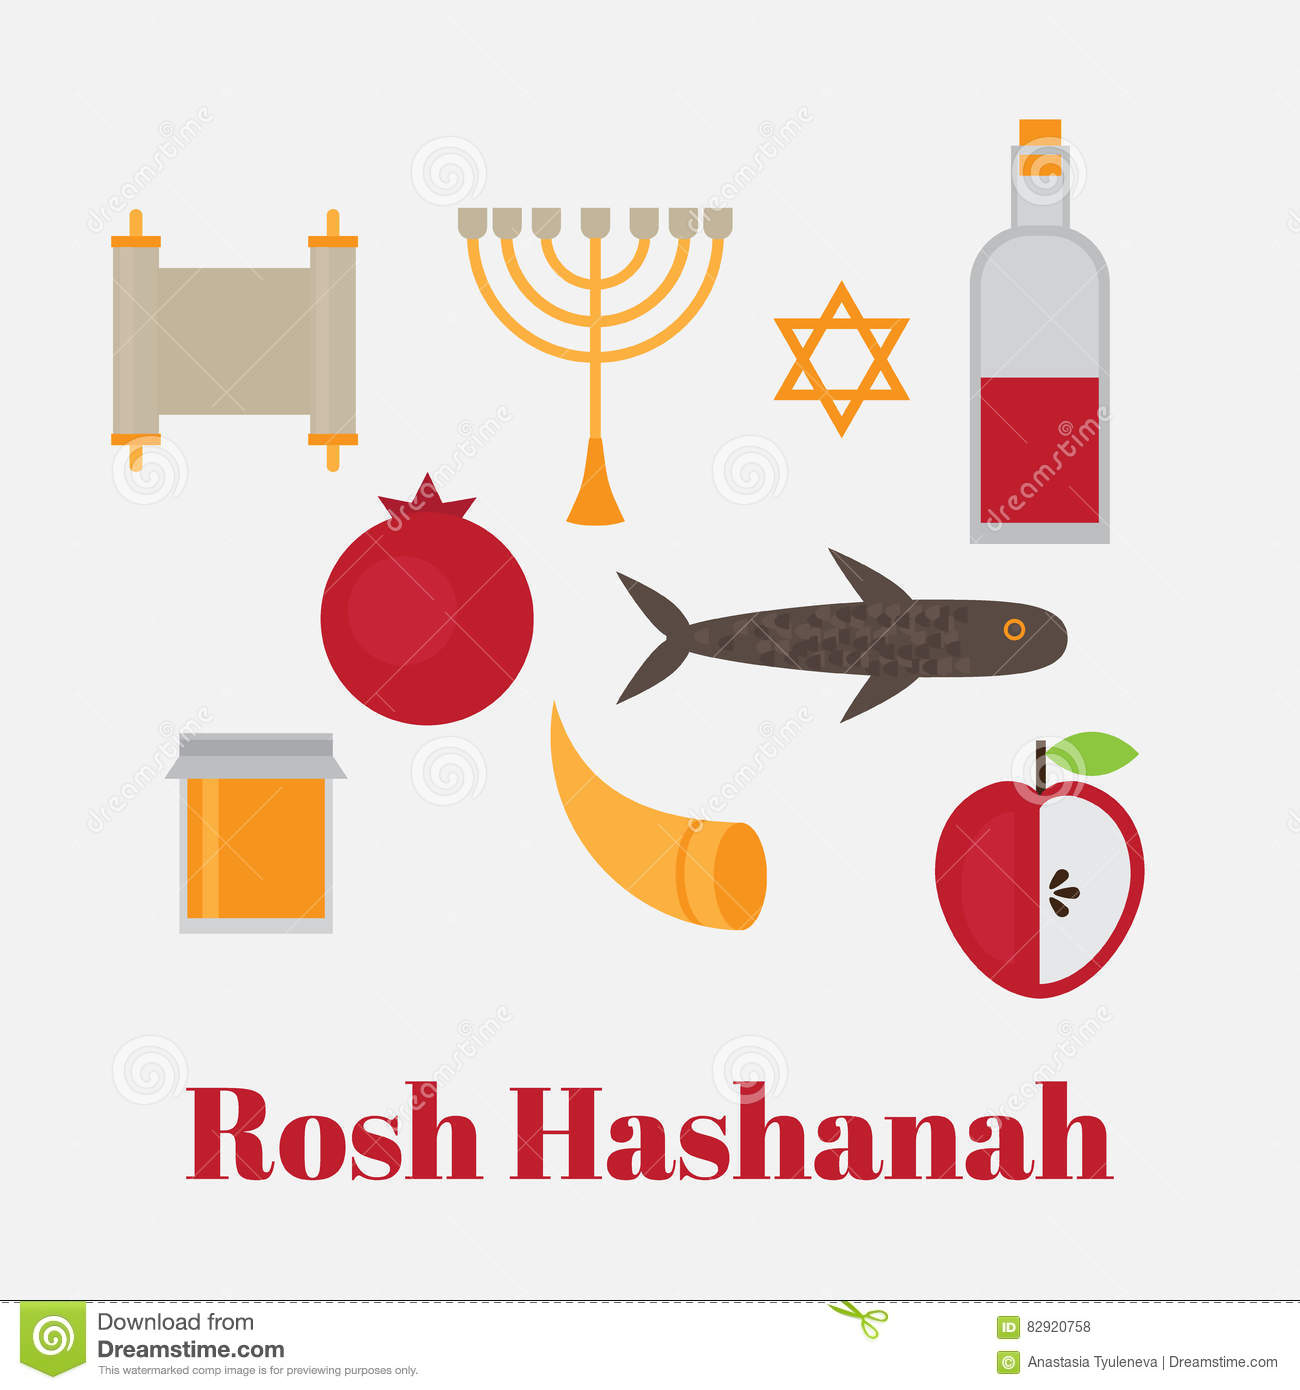 Rosh Hashanah Jewish New Year Greeting Card Hebrew Symbols Judaism